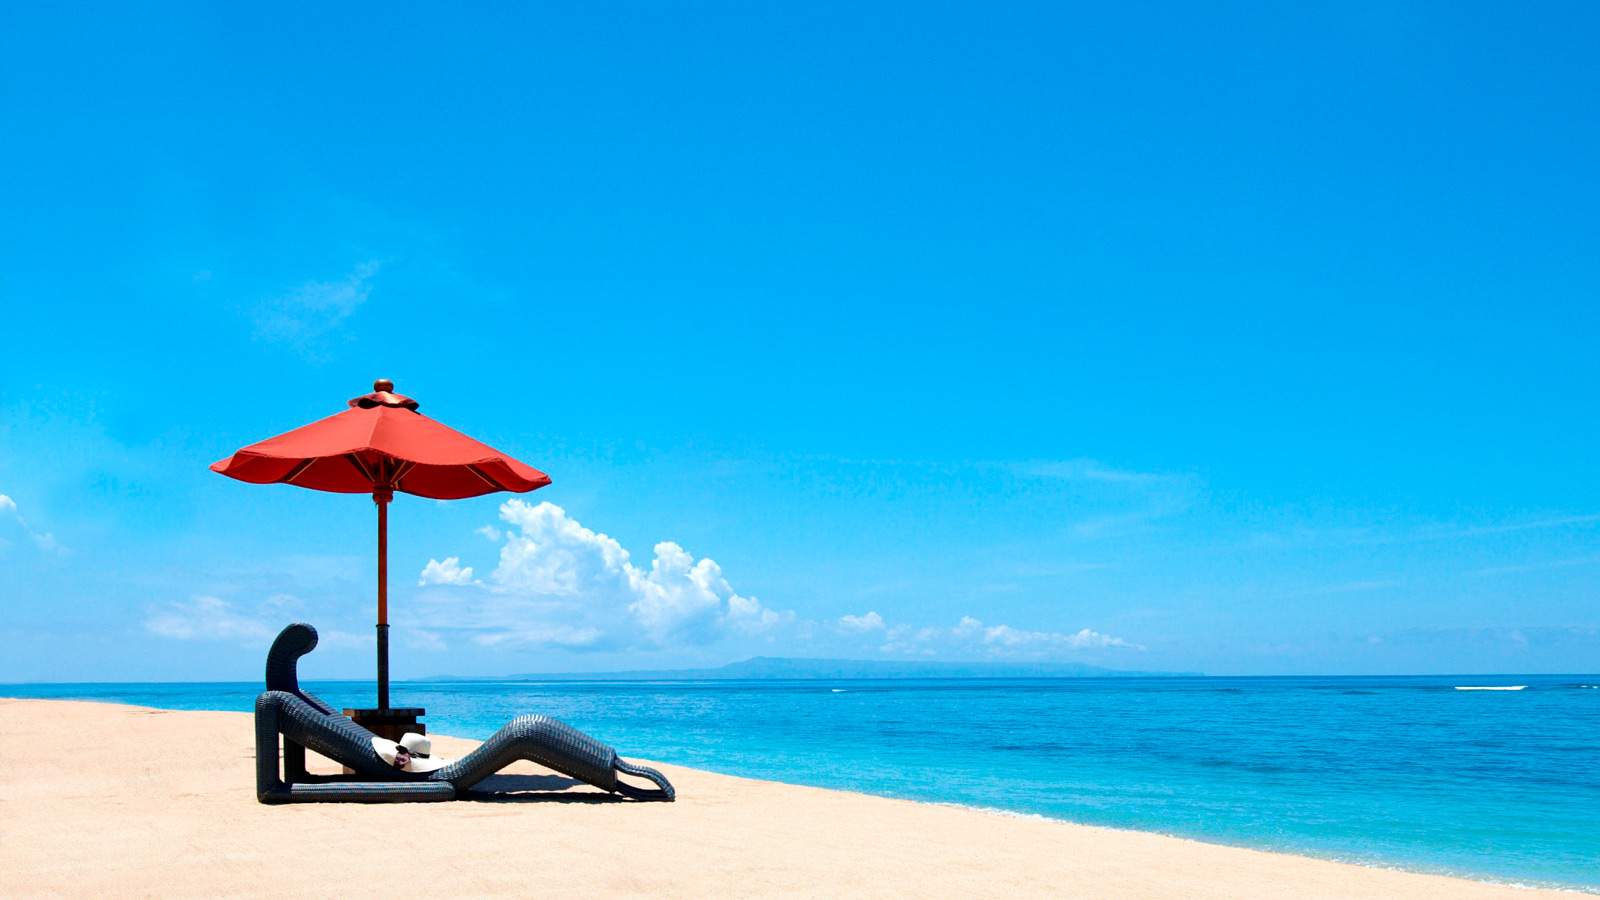 White Sand Beach - The St. Regis Bali Resort